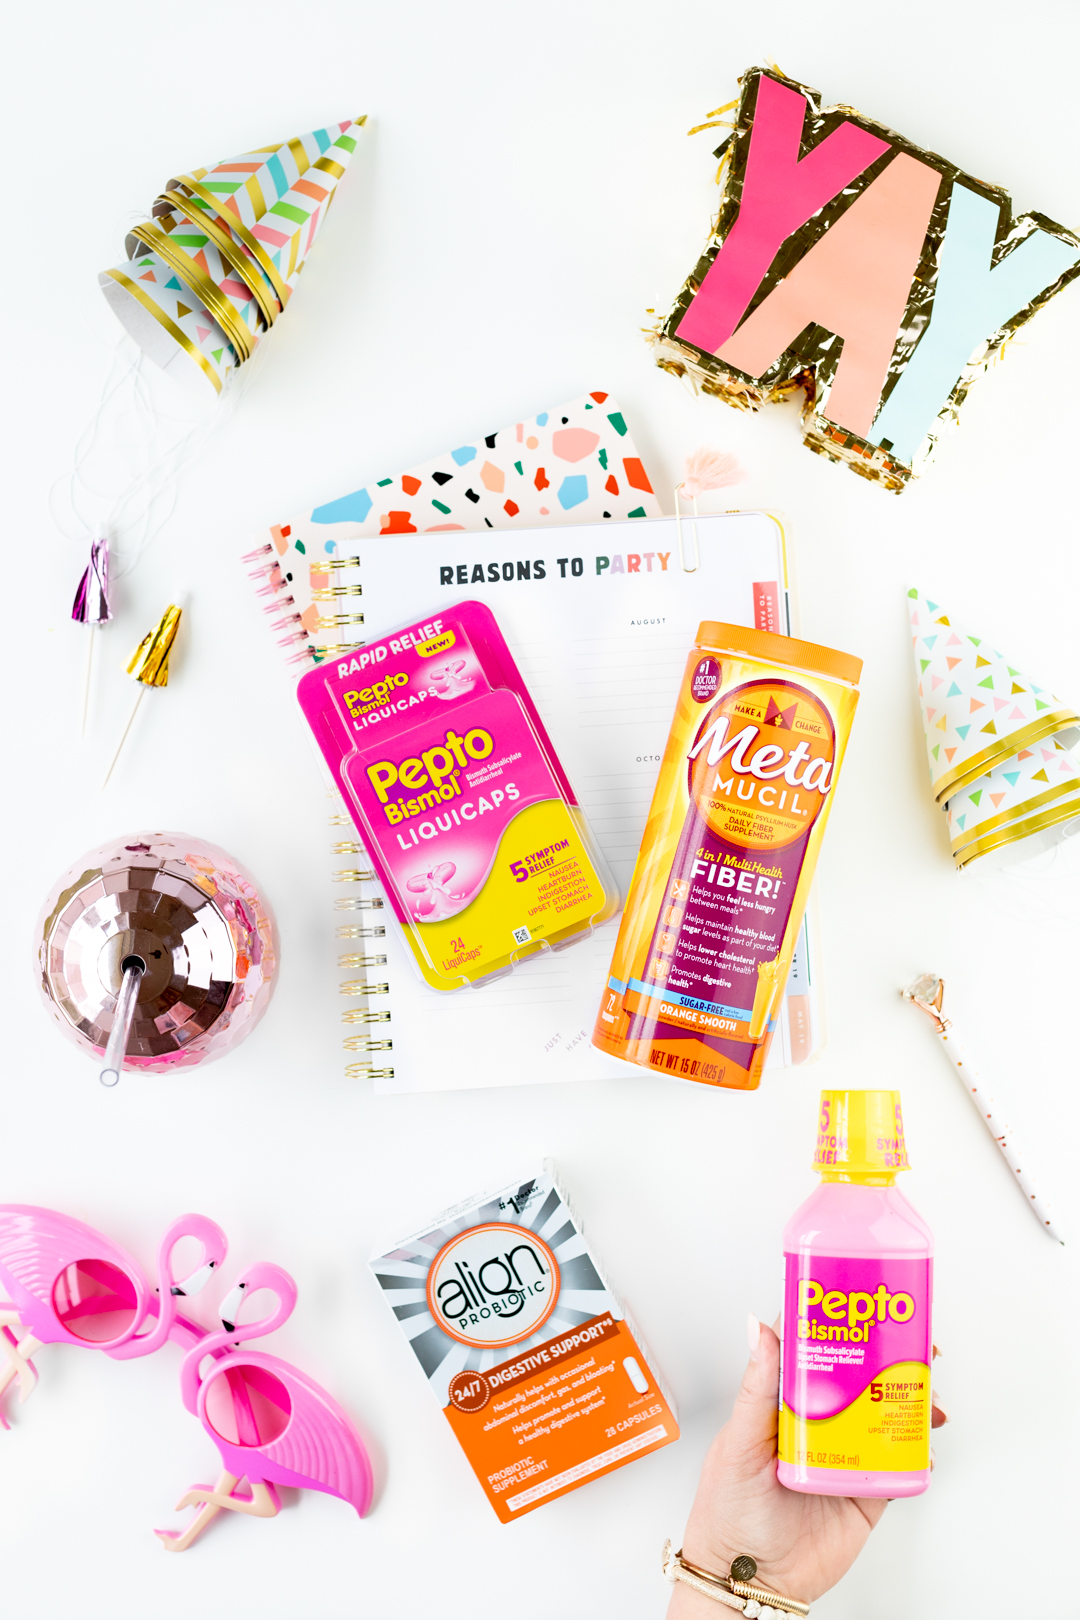 Various digestive products like Pepto Bismol